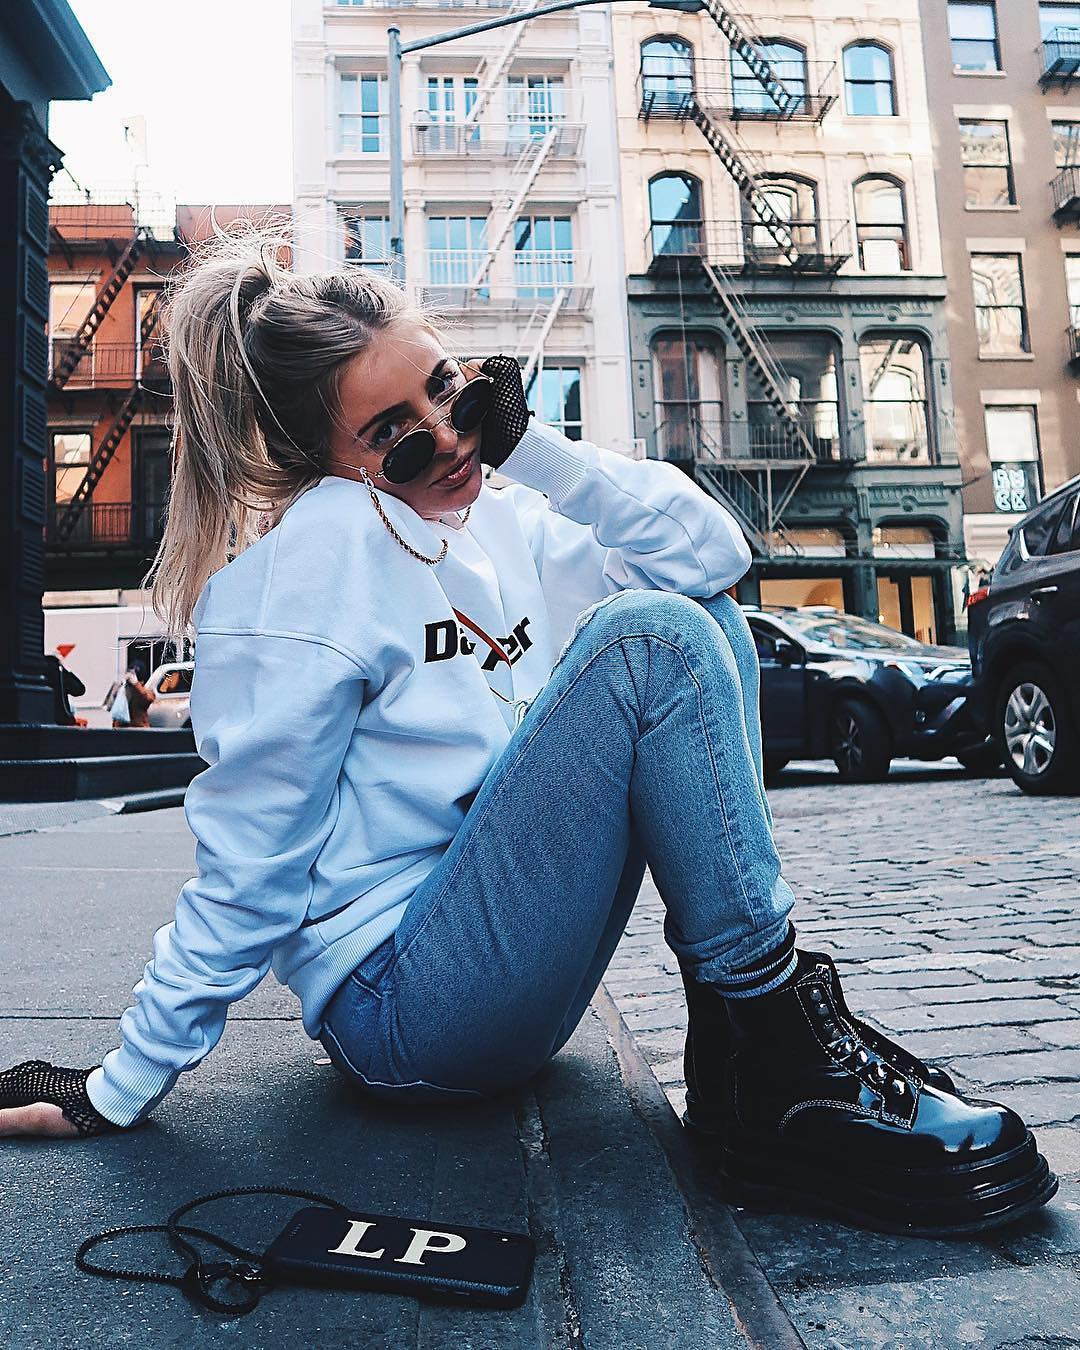 Patent Combat Boots, White Sweatshirt And Jeans For Casual Street Walks 2019